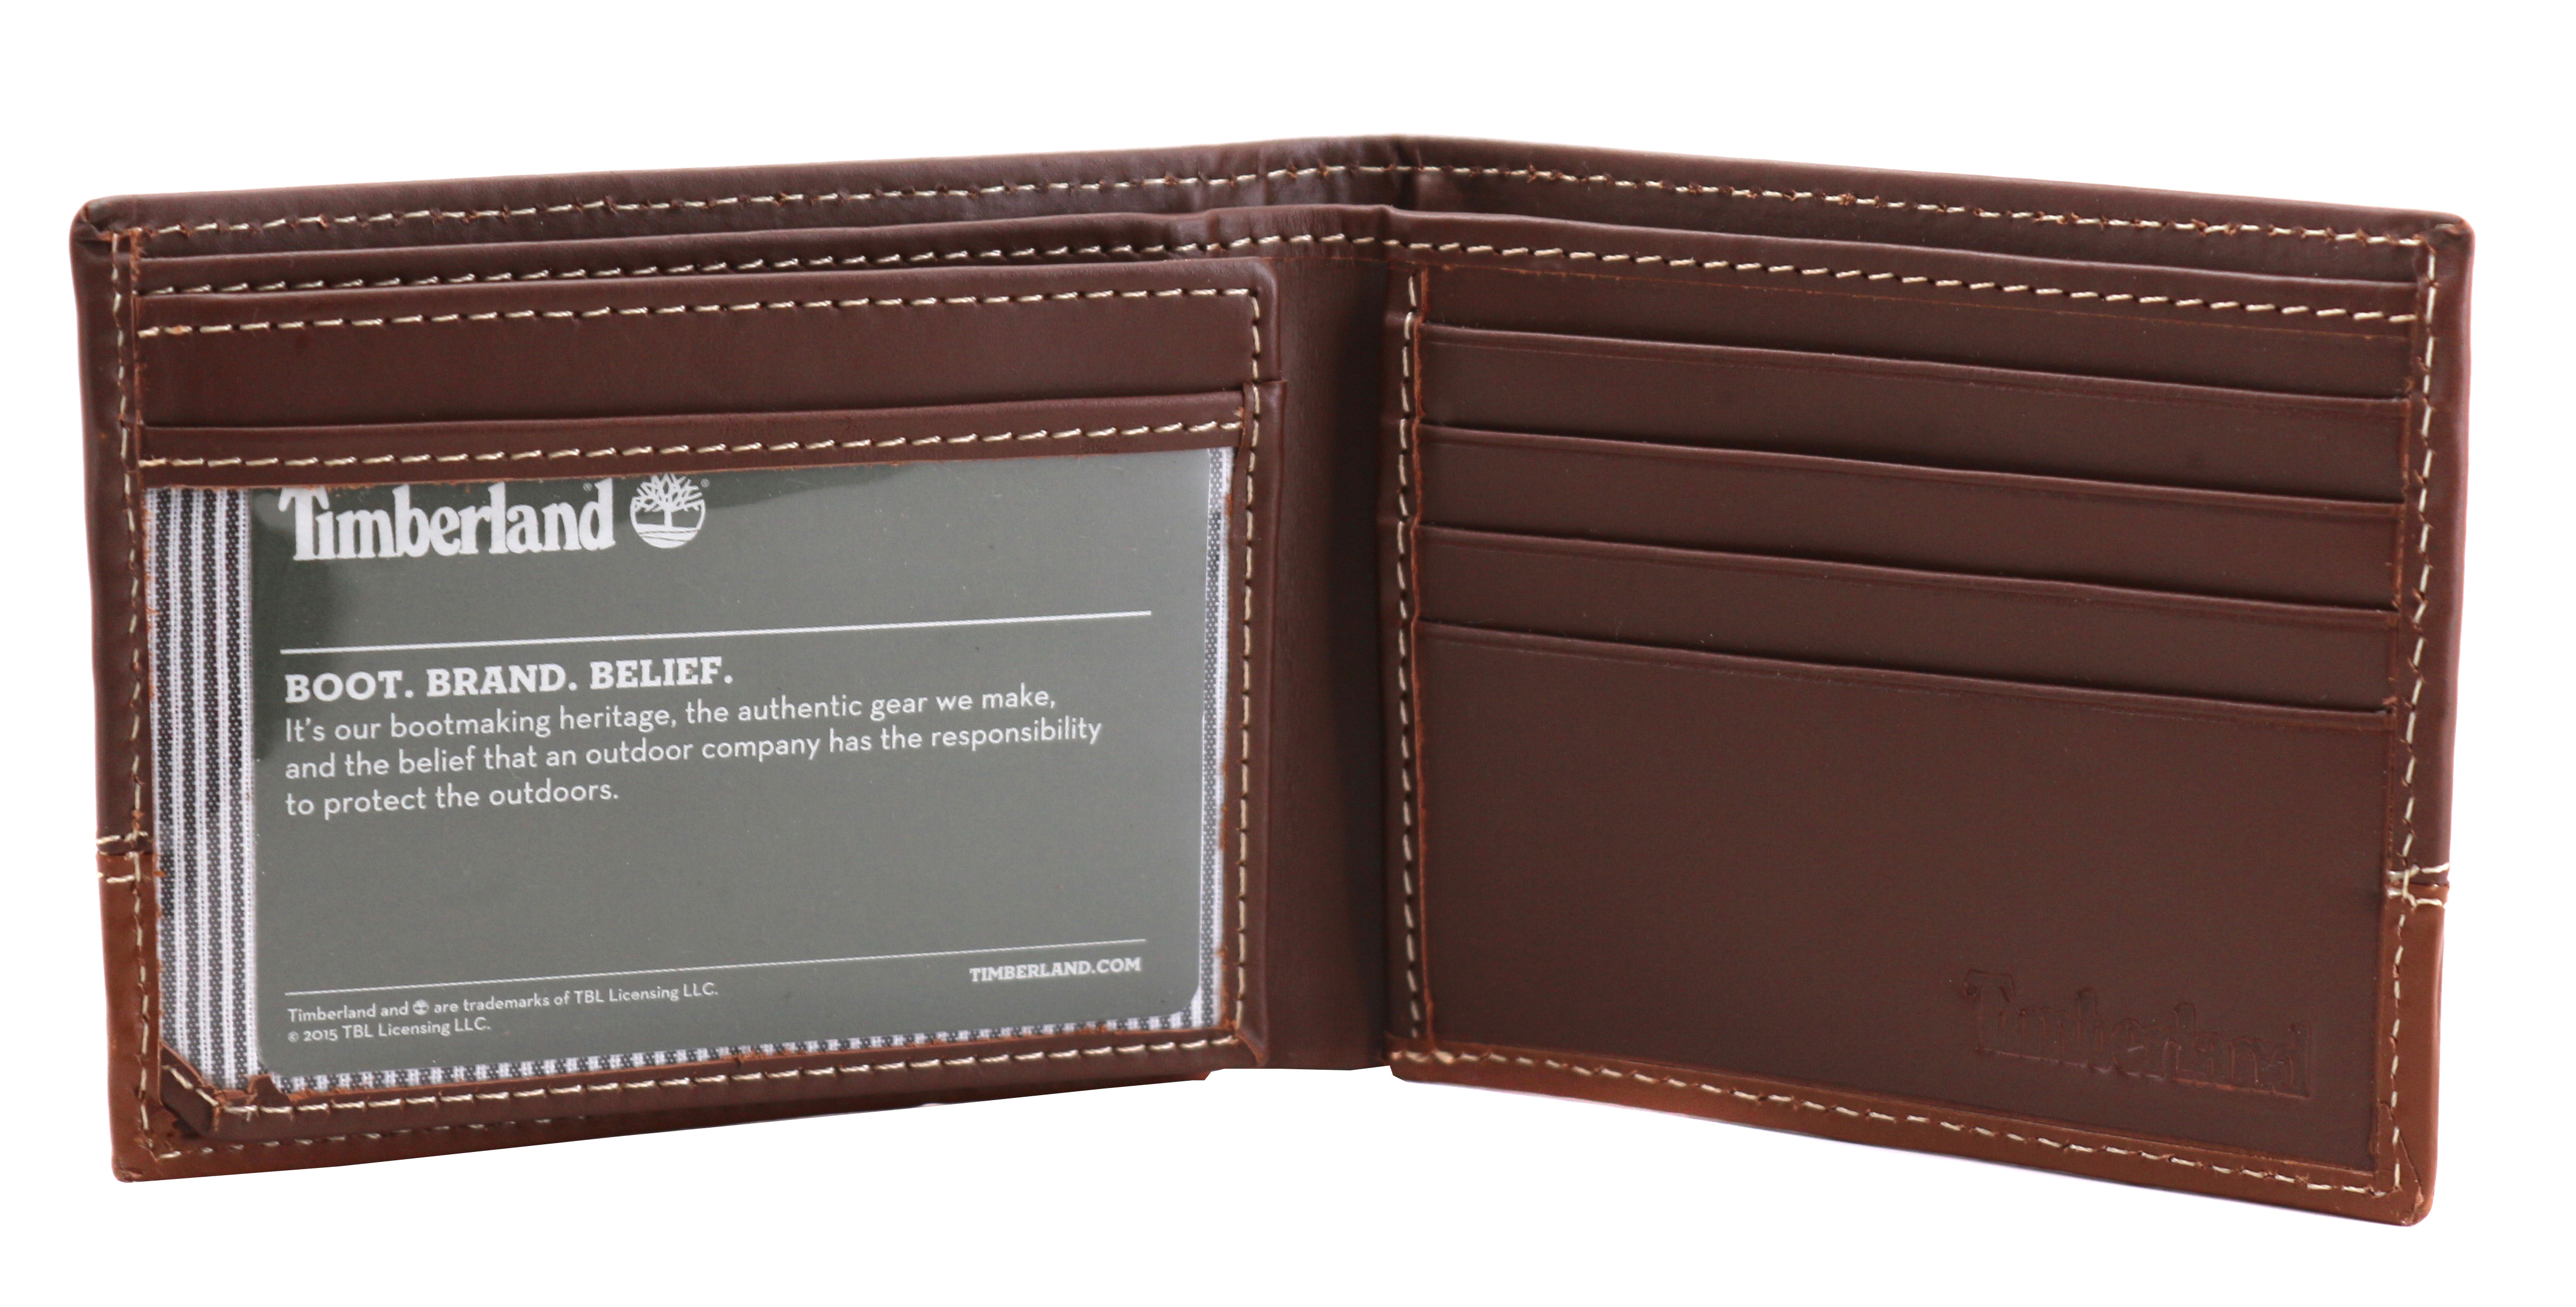 Timberland-Men-039-s-Genuine-Two-Tone-Leather-Credit-Card-Billfold-Commuter-Wallet thumbnail 40